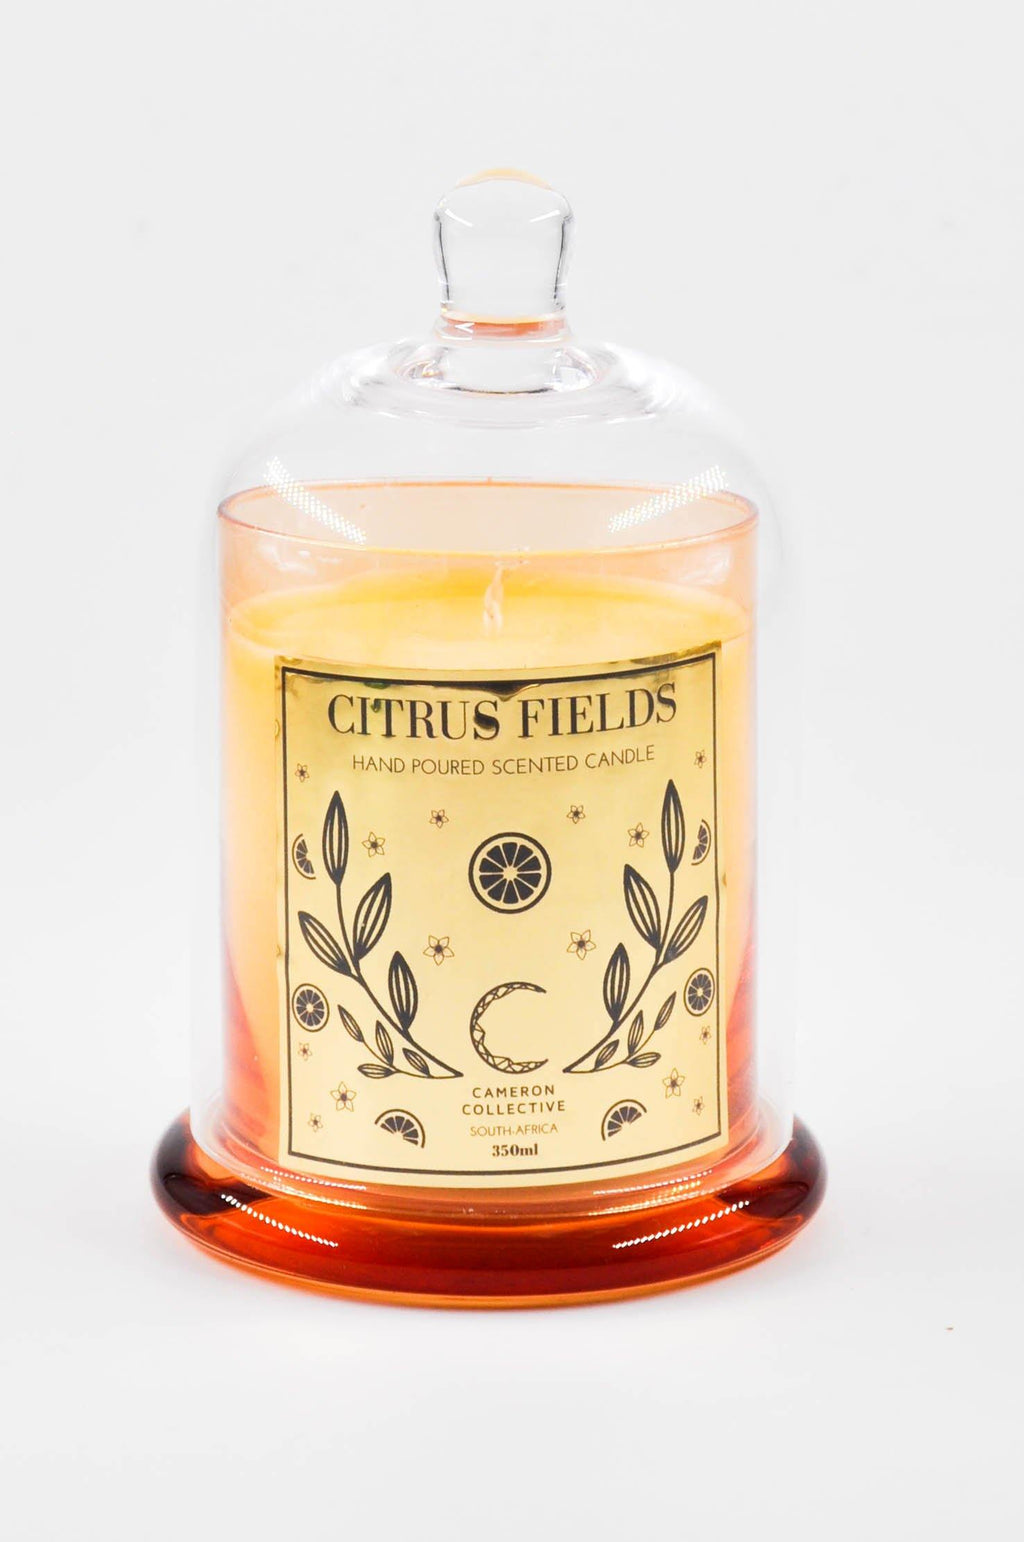 Citrus Fields Scented candle